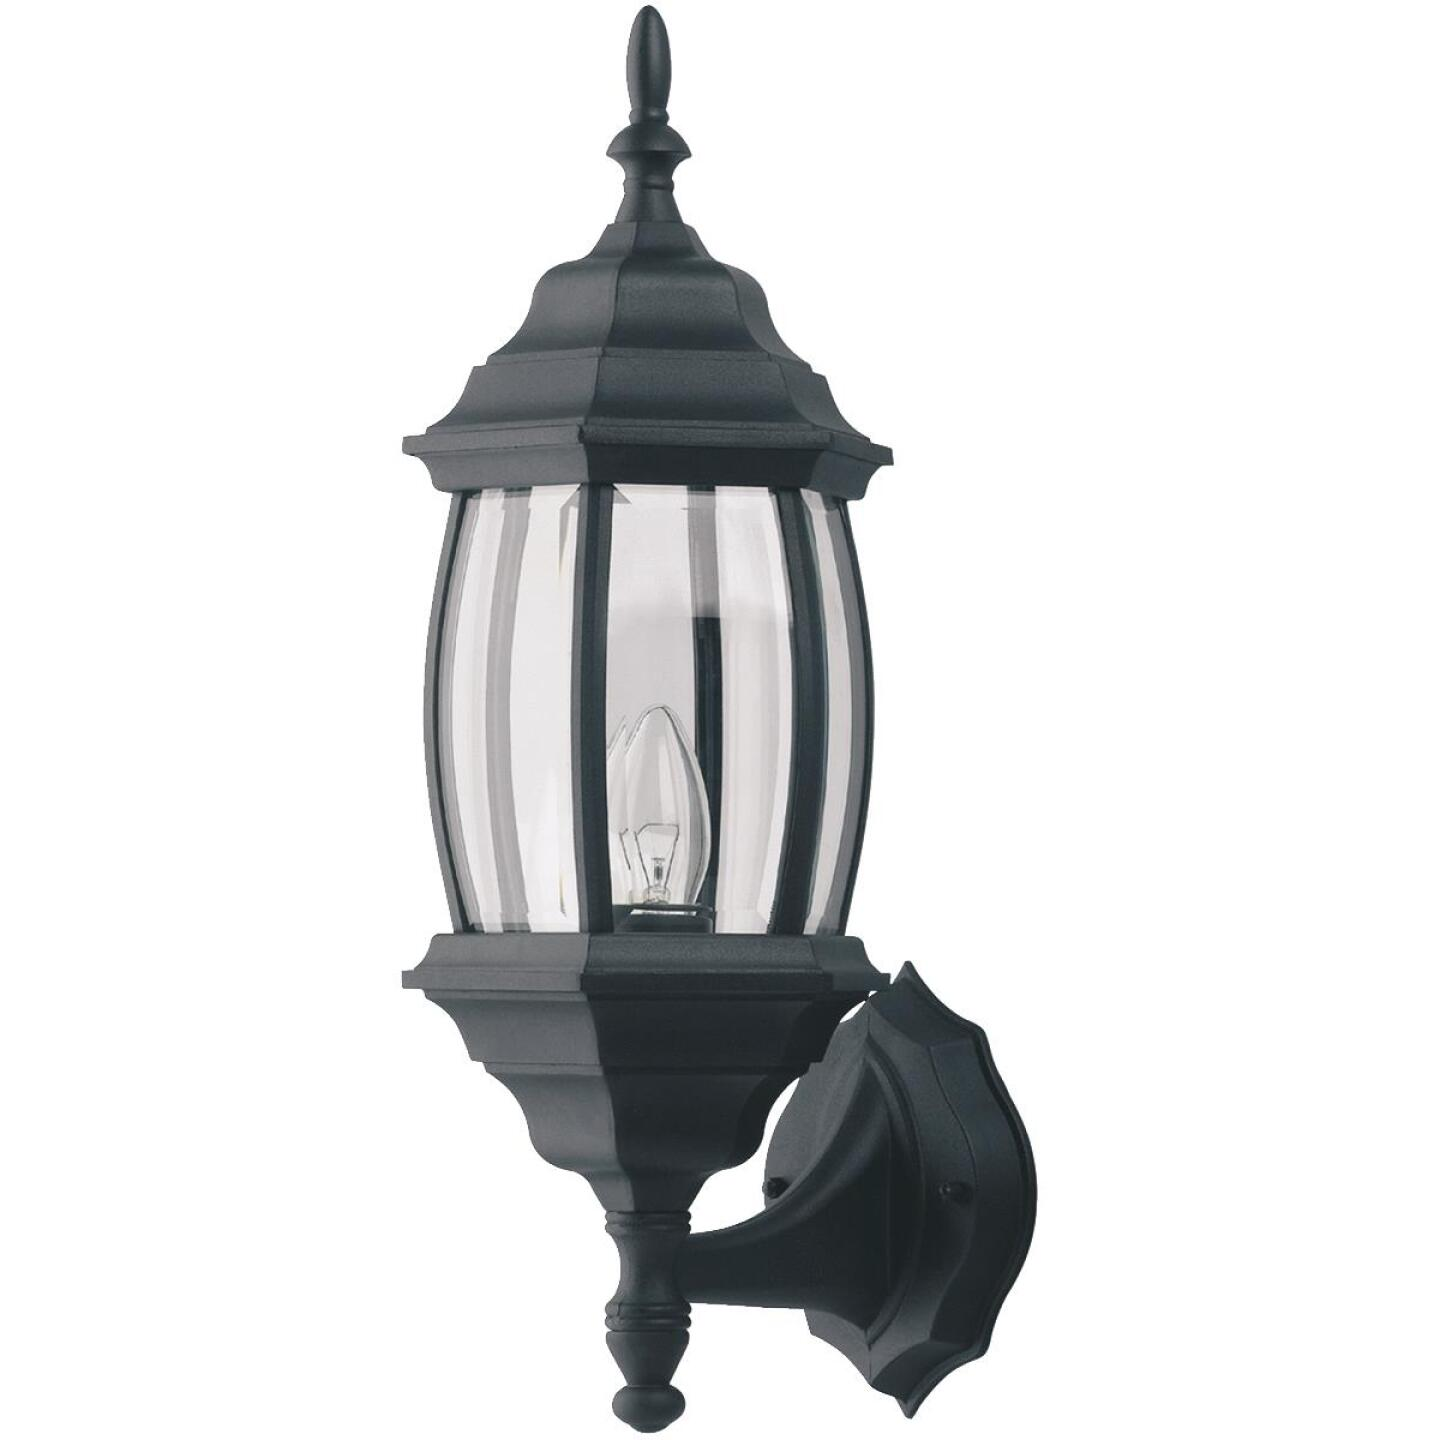 Home Impressions Black Incandescent Type A or B Outdoor Wall Light Fixture (2-Pack) Image 2